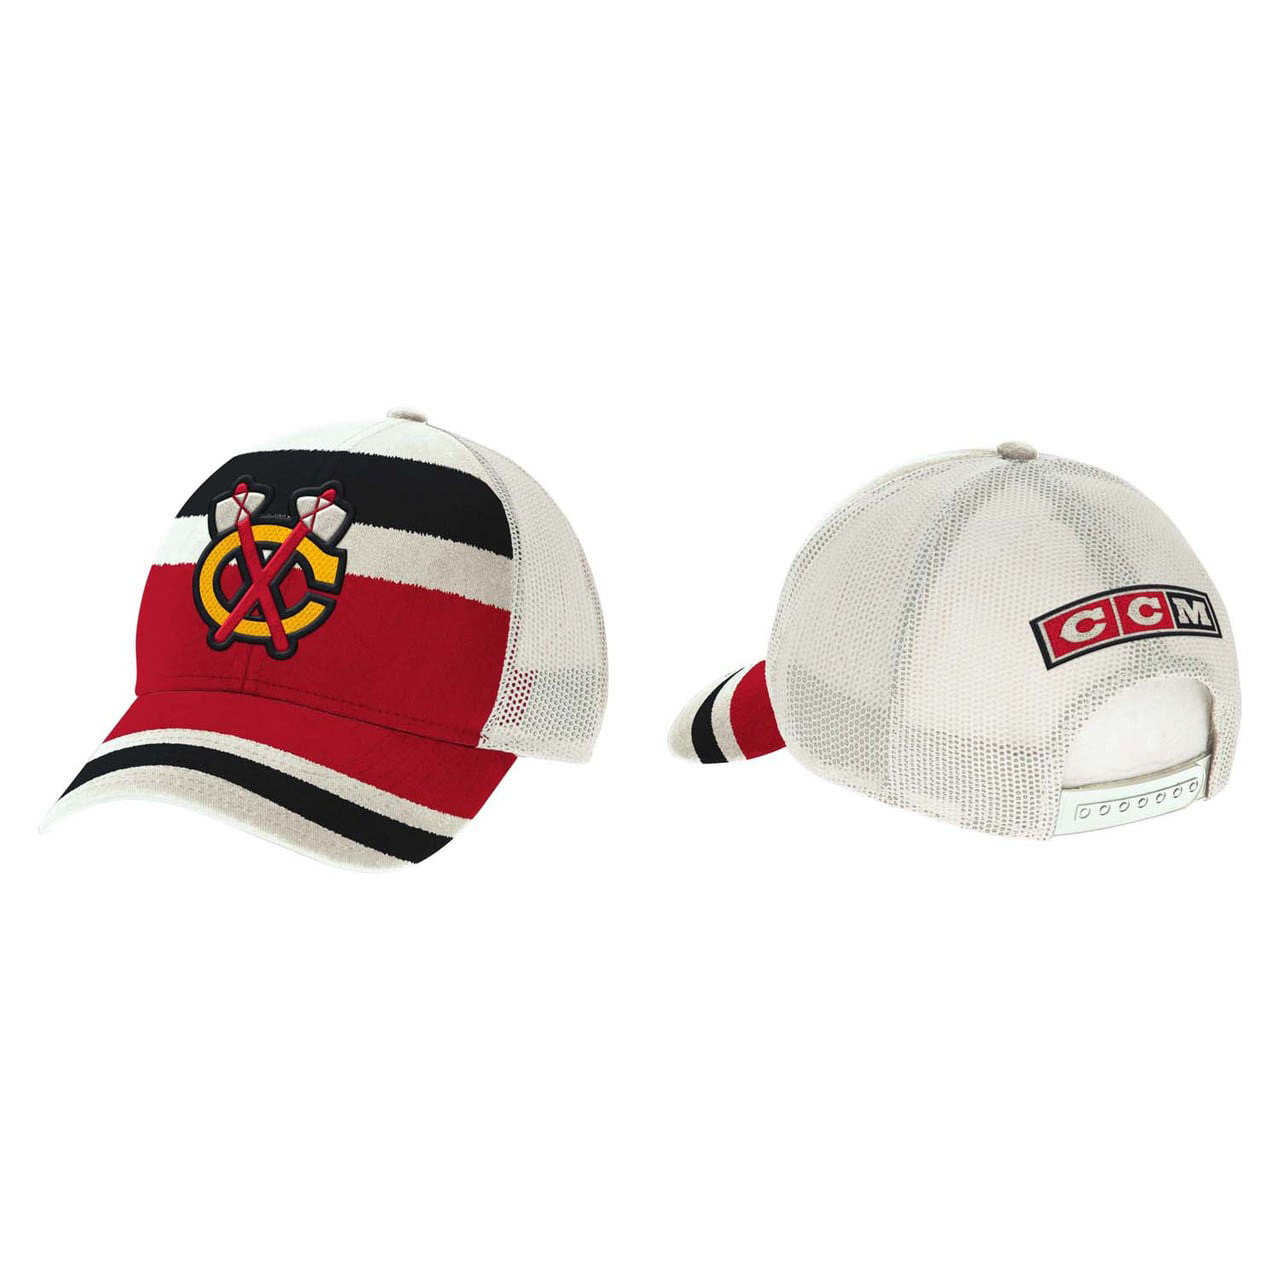 Chicago Blackhawks Adult CCM Winter Classic Meshback Cap Team Color by Reebok